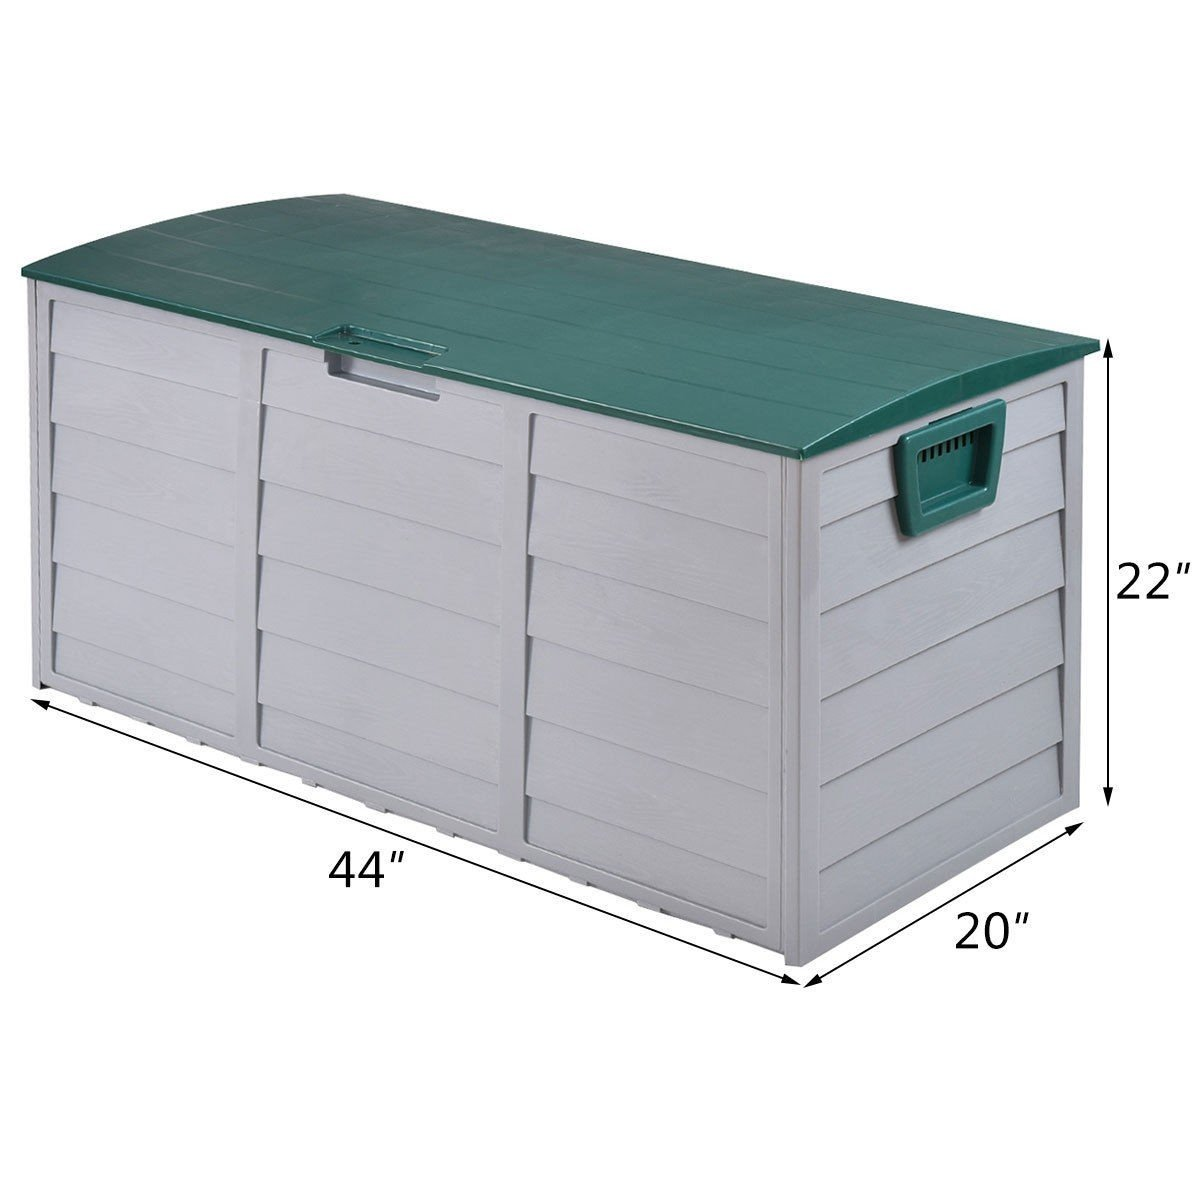 COSTWAY 70 Gallon Durable Outdoor Plasic Storage Box + FREE E-Book by COSTWAY (Image #2)